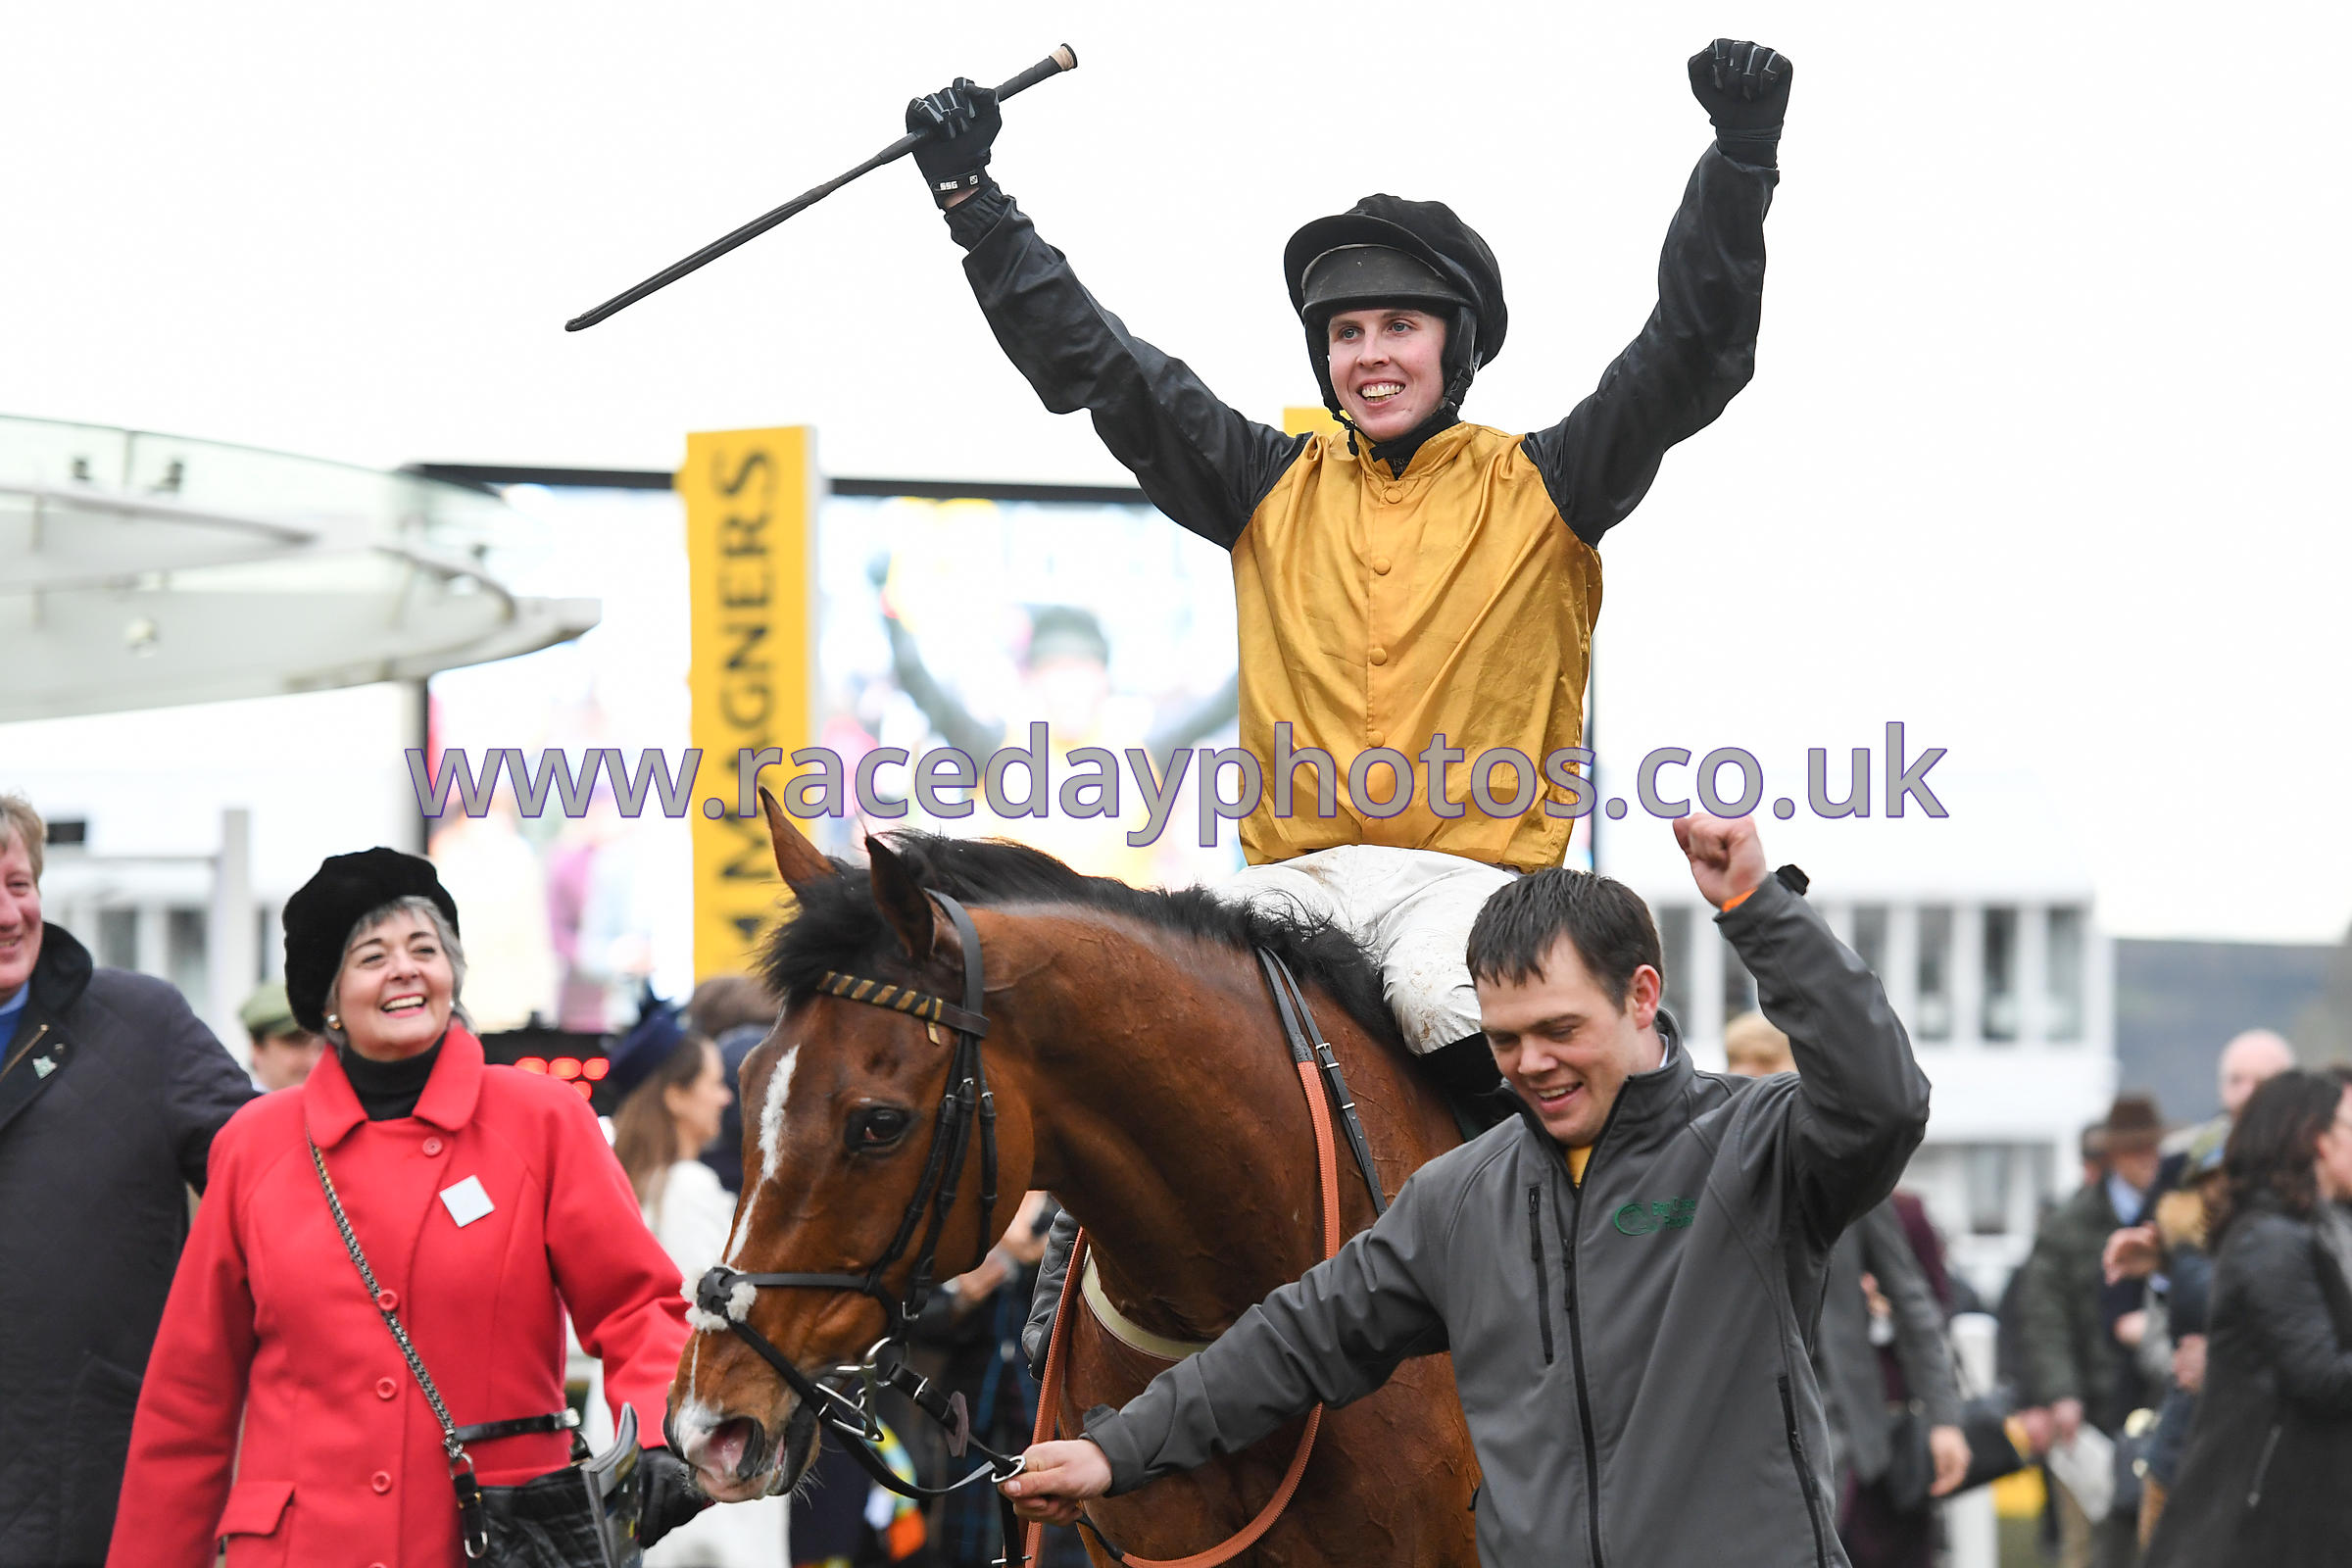 Croco_Bay_winners_enclosure_15032019-3